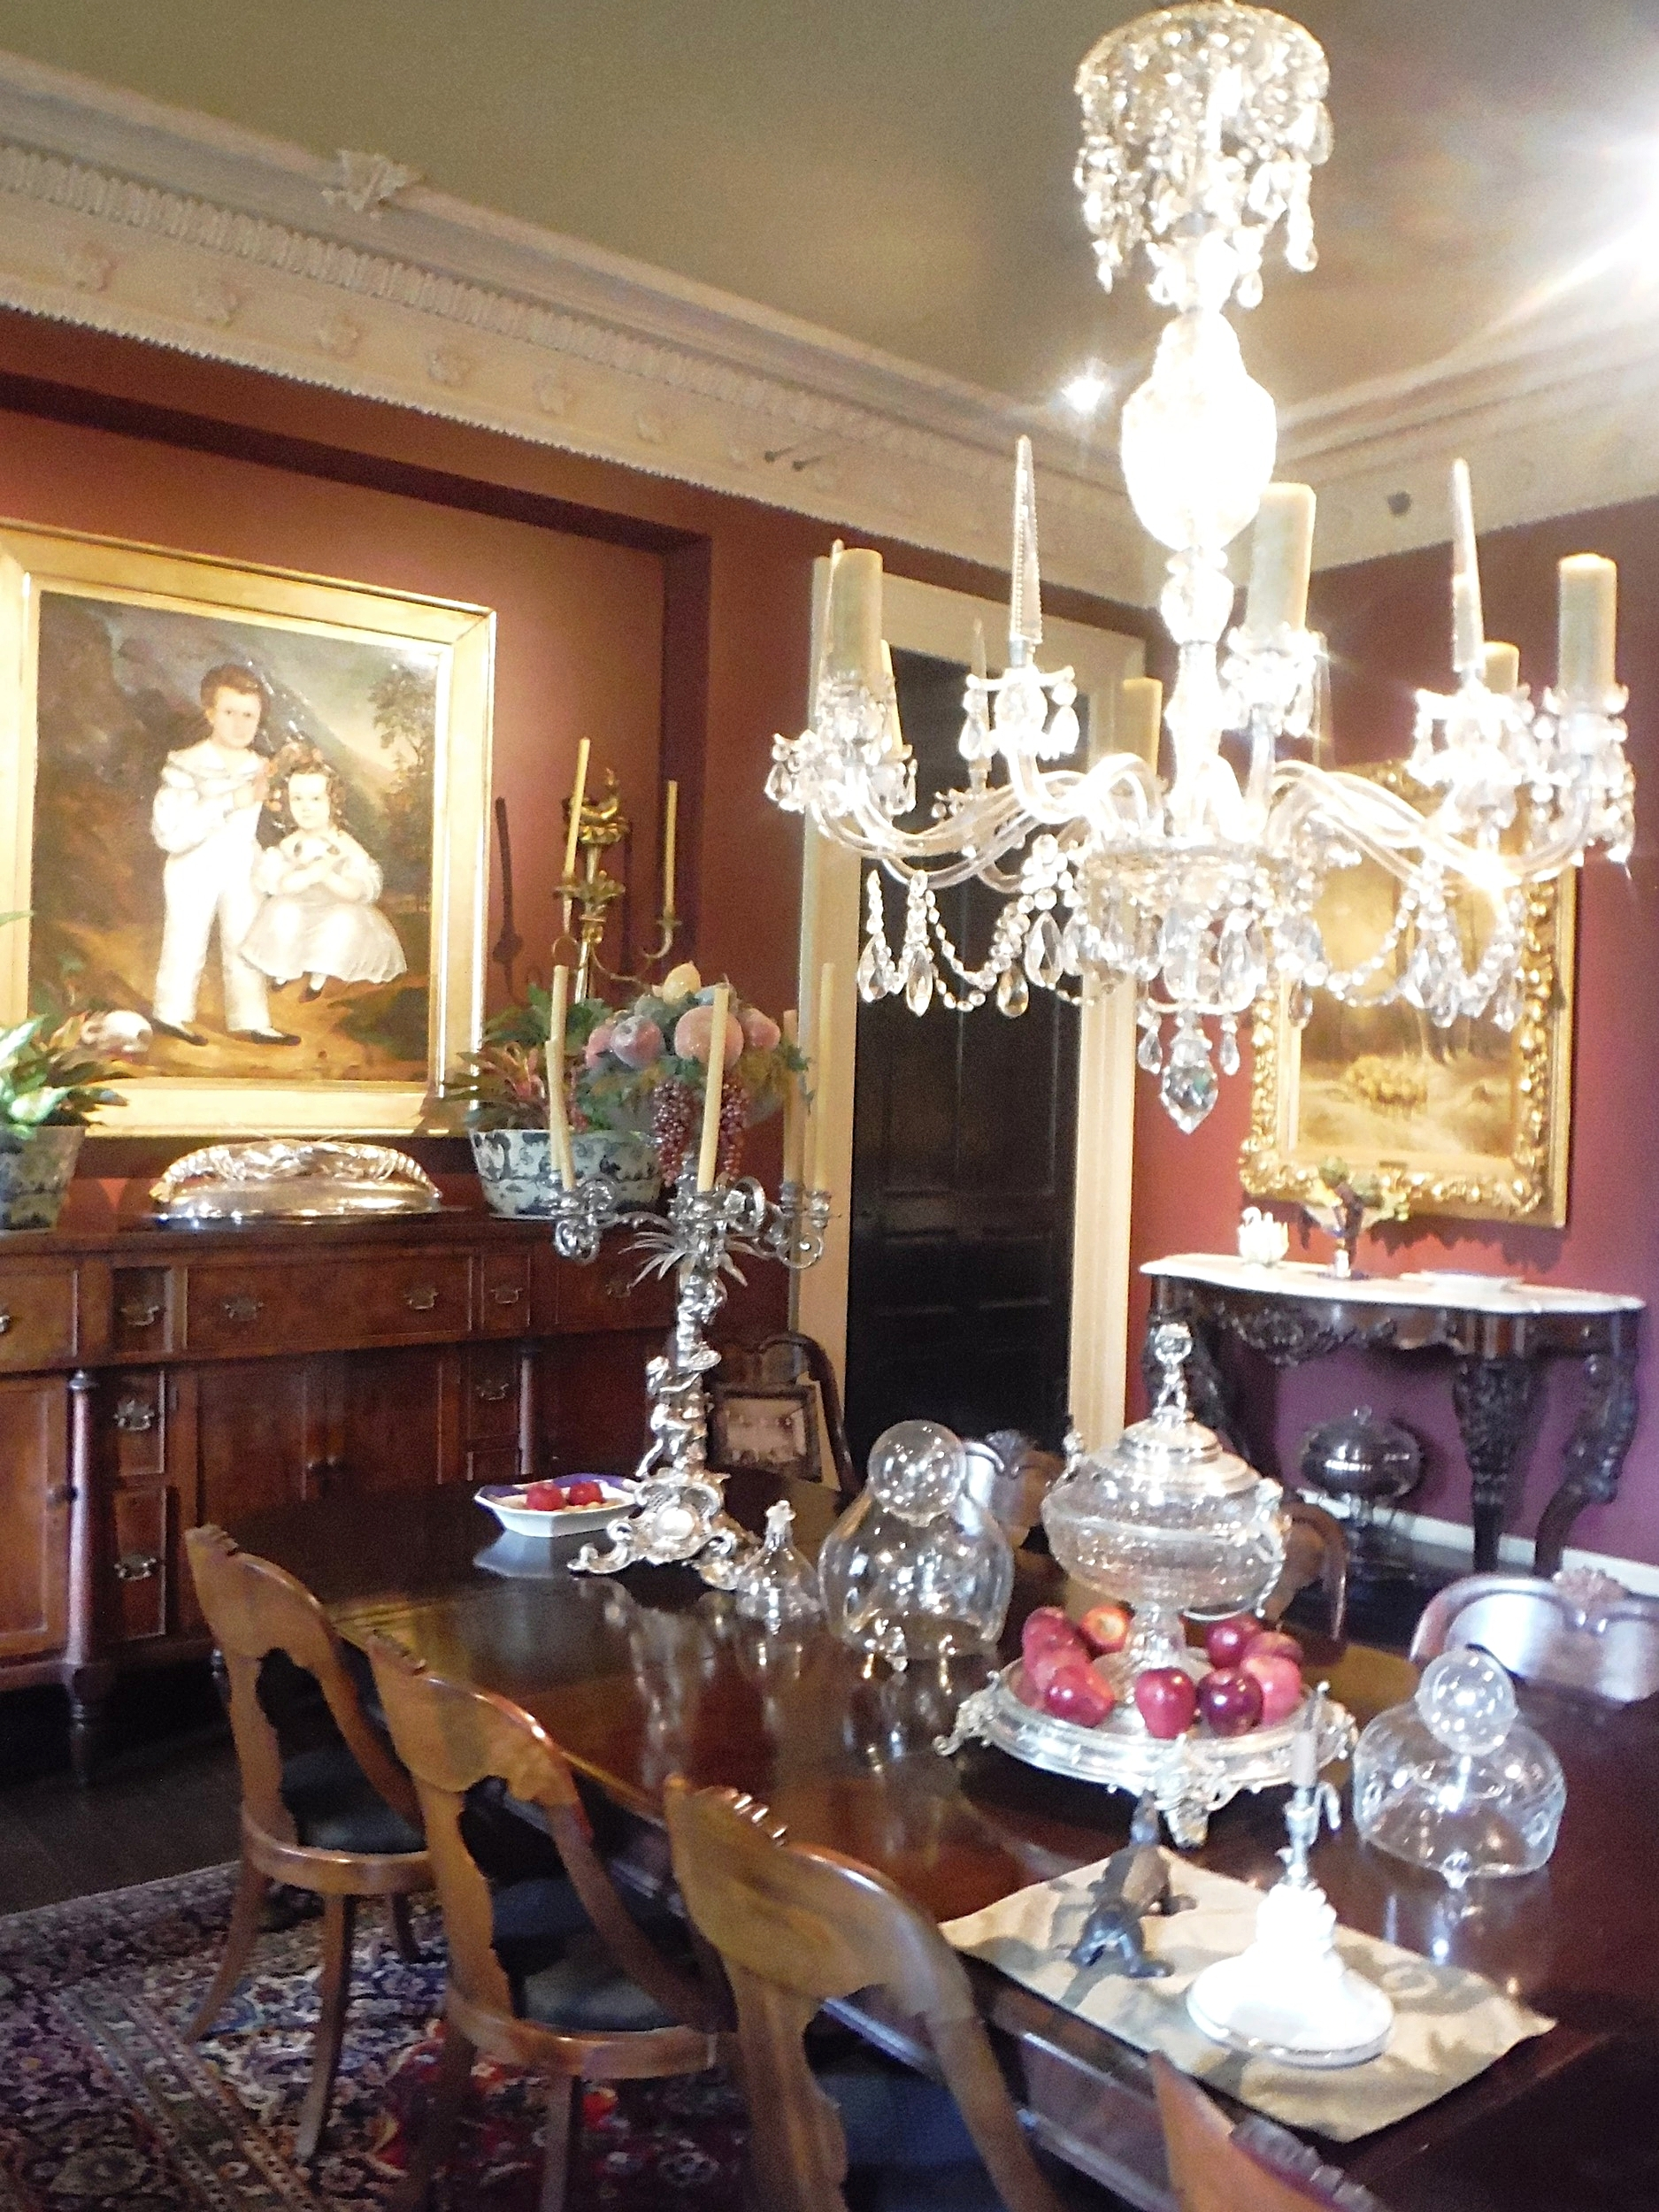 The sugar barons of Houmas House dined under crystal chandeliers and master oil paintings.